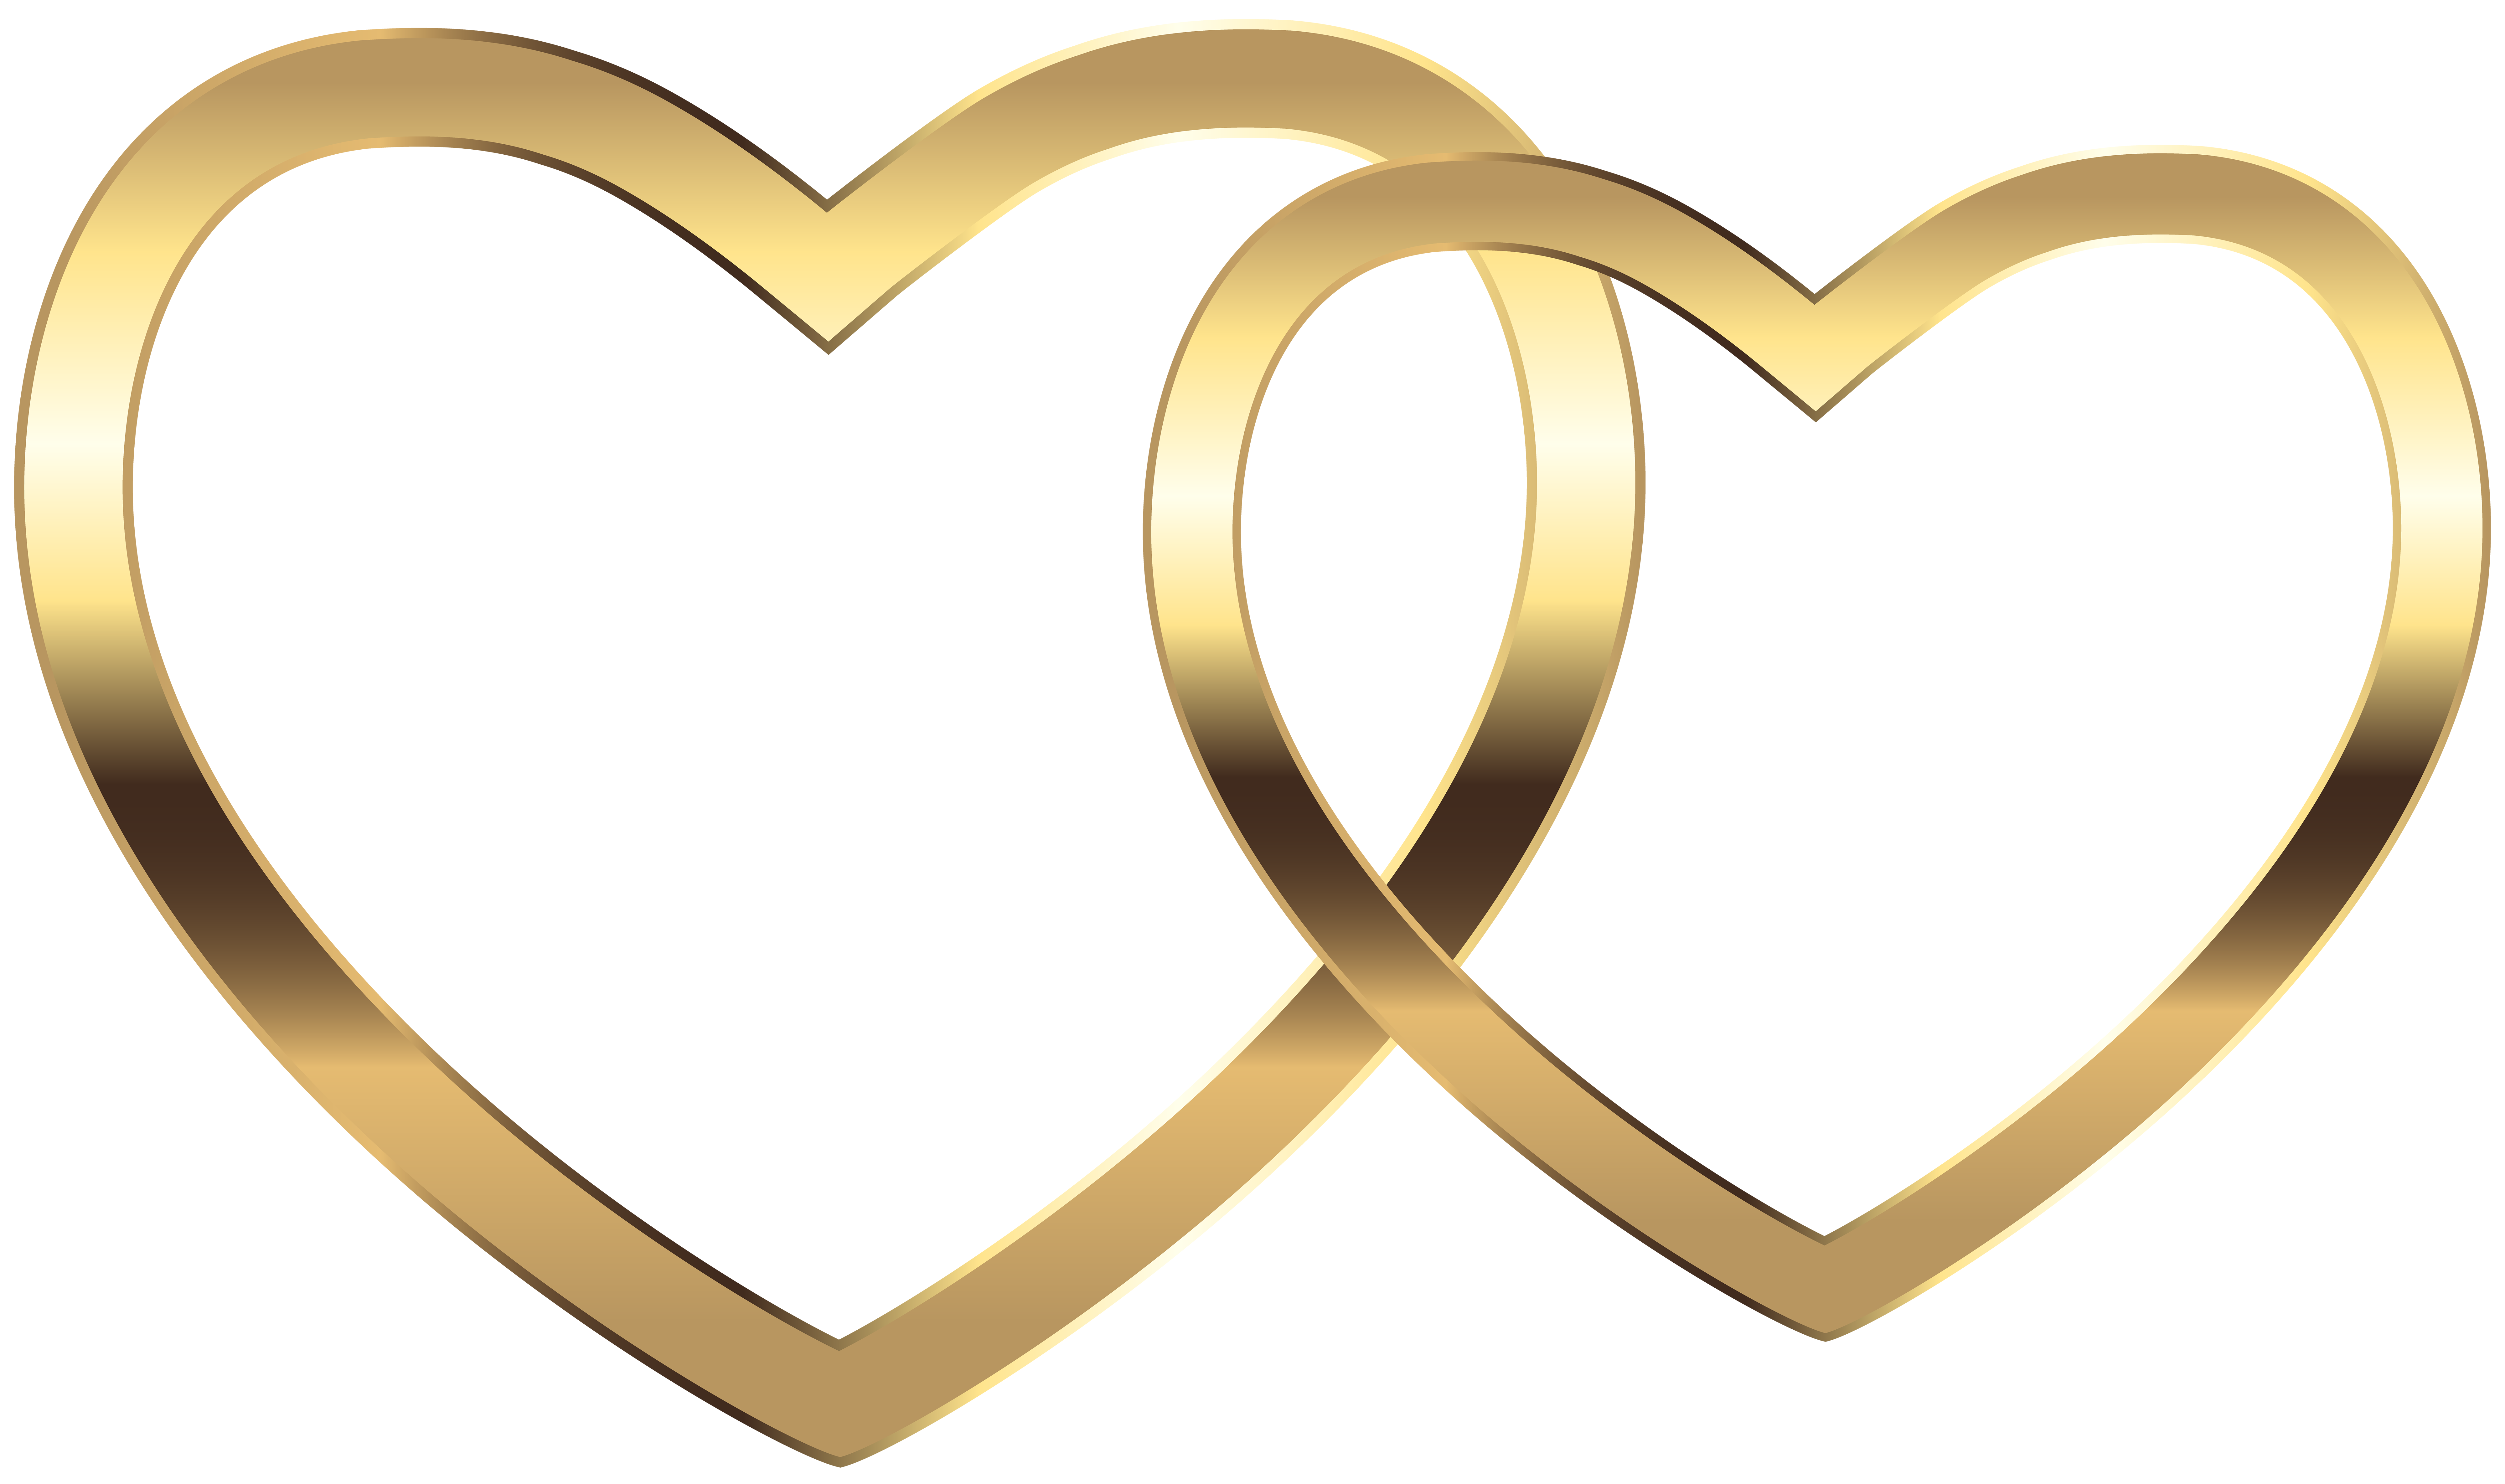 Gold heart clipart free download best glod transparent download Transparent Two Gold Hearts PNG Clip Art Image | Gallery ... transparent download